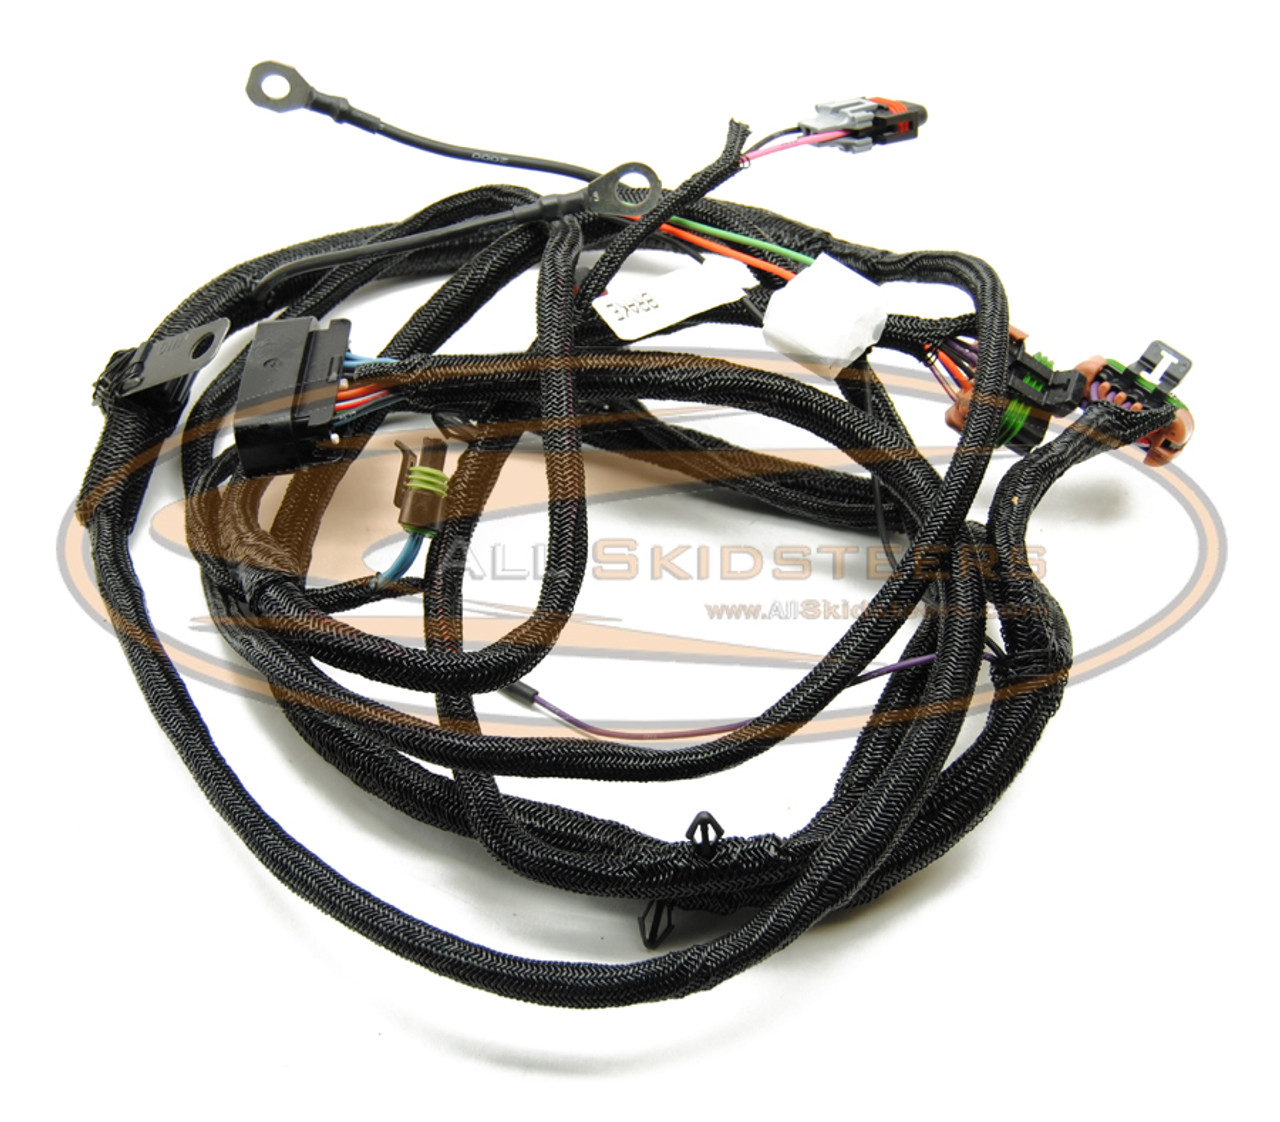 hight resolution of cab wiring harness standard for bobcat skid steer replaces oem 6727178